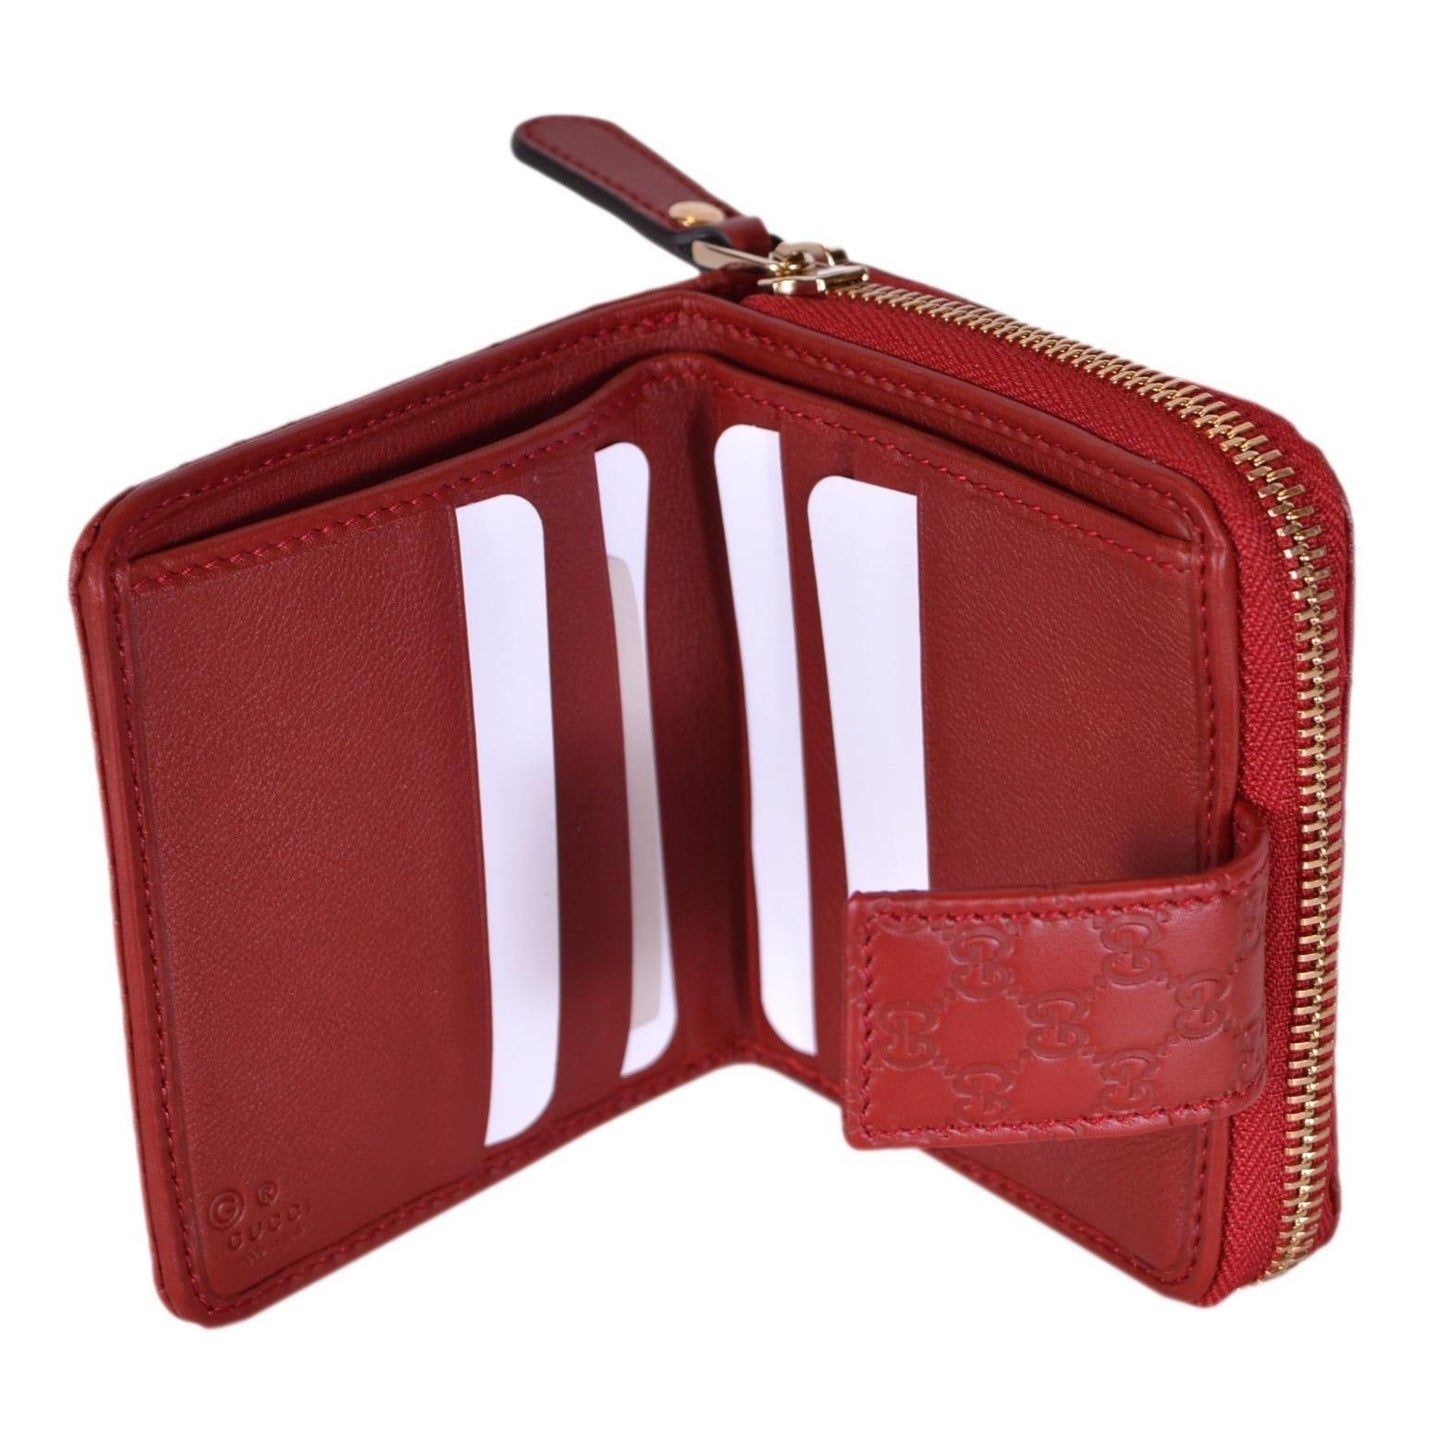 ab34e4f3ce6a Shop Gucci Women's 449395 Red Leather Micro GG Guccissima French Wallet -  4.25